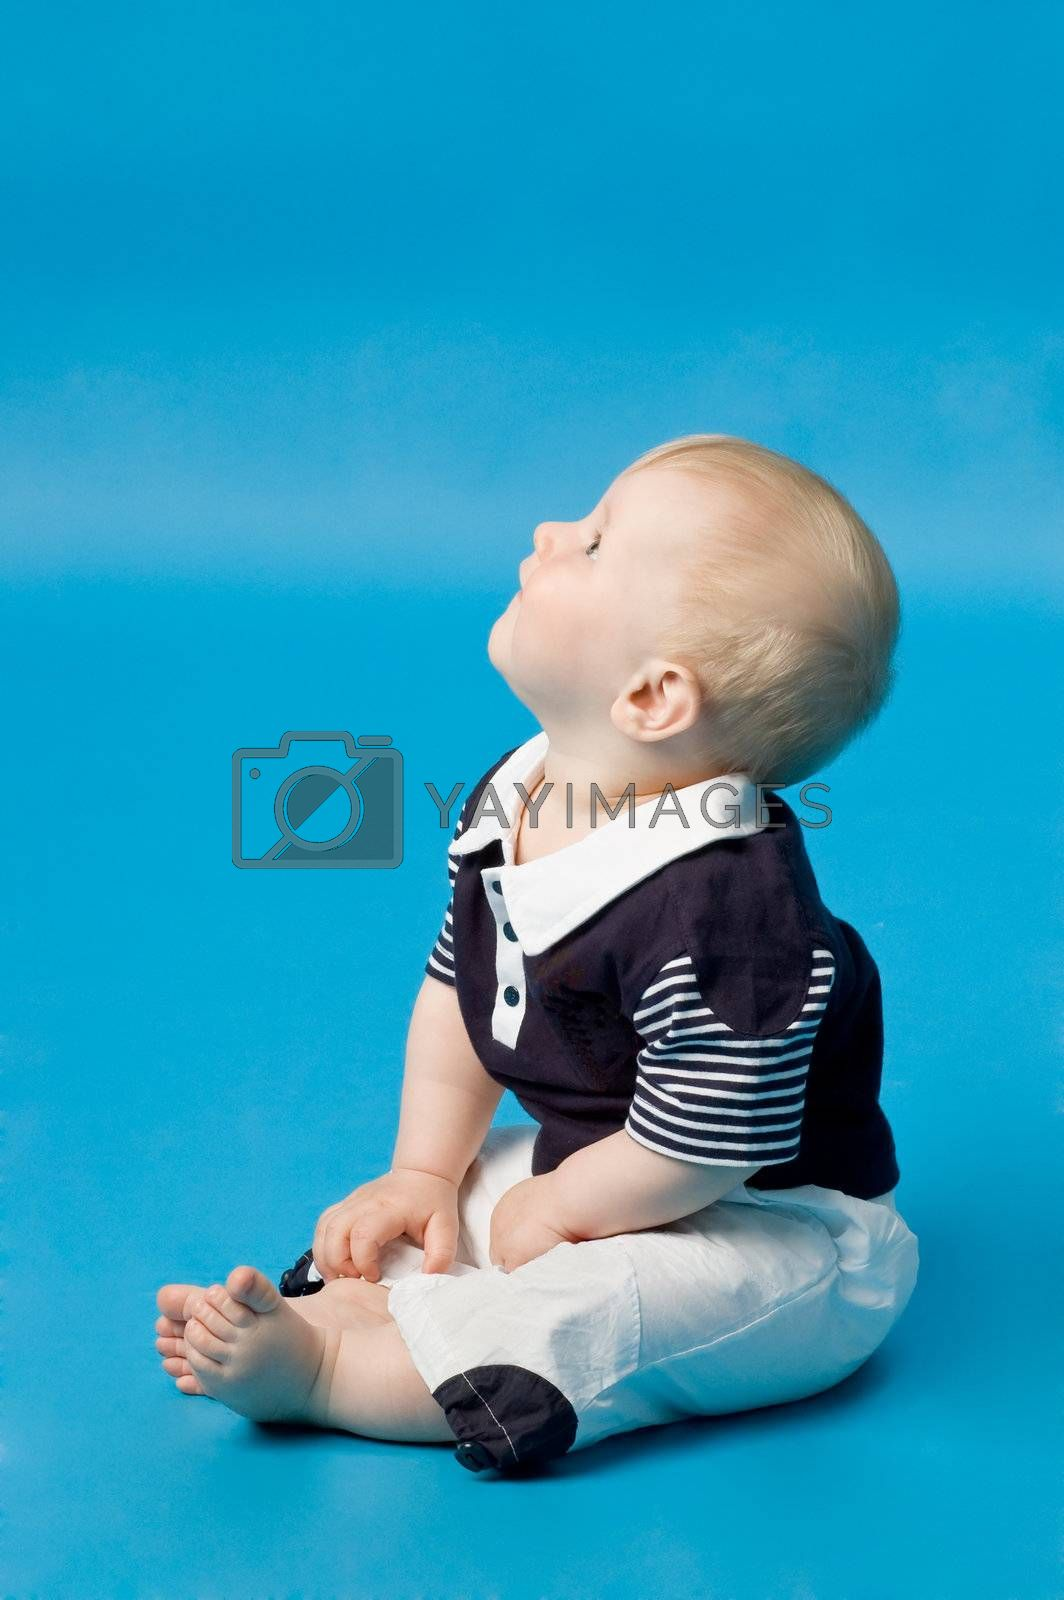 The small child in studio, on a blue background